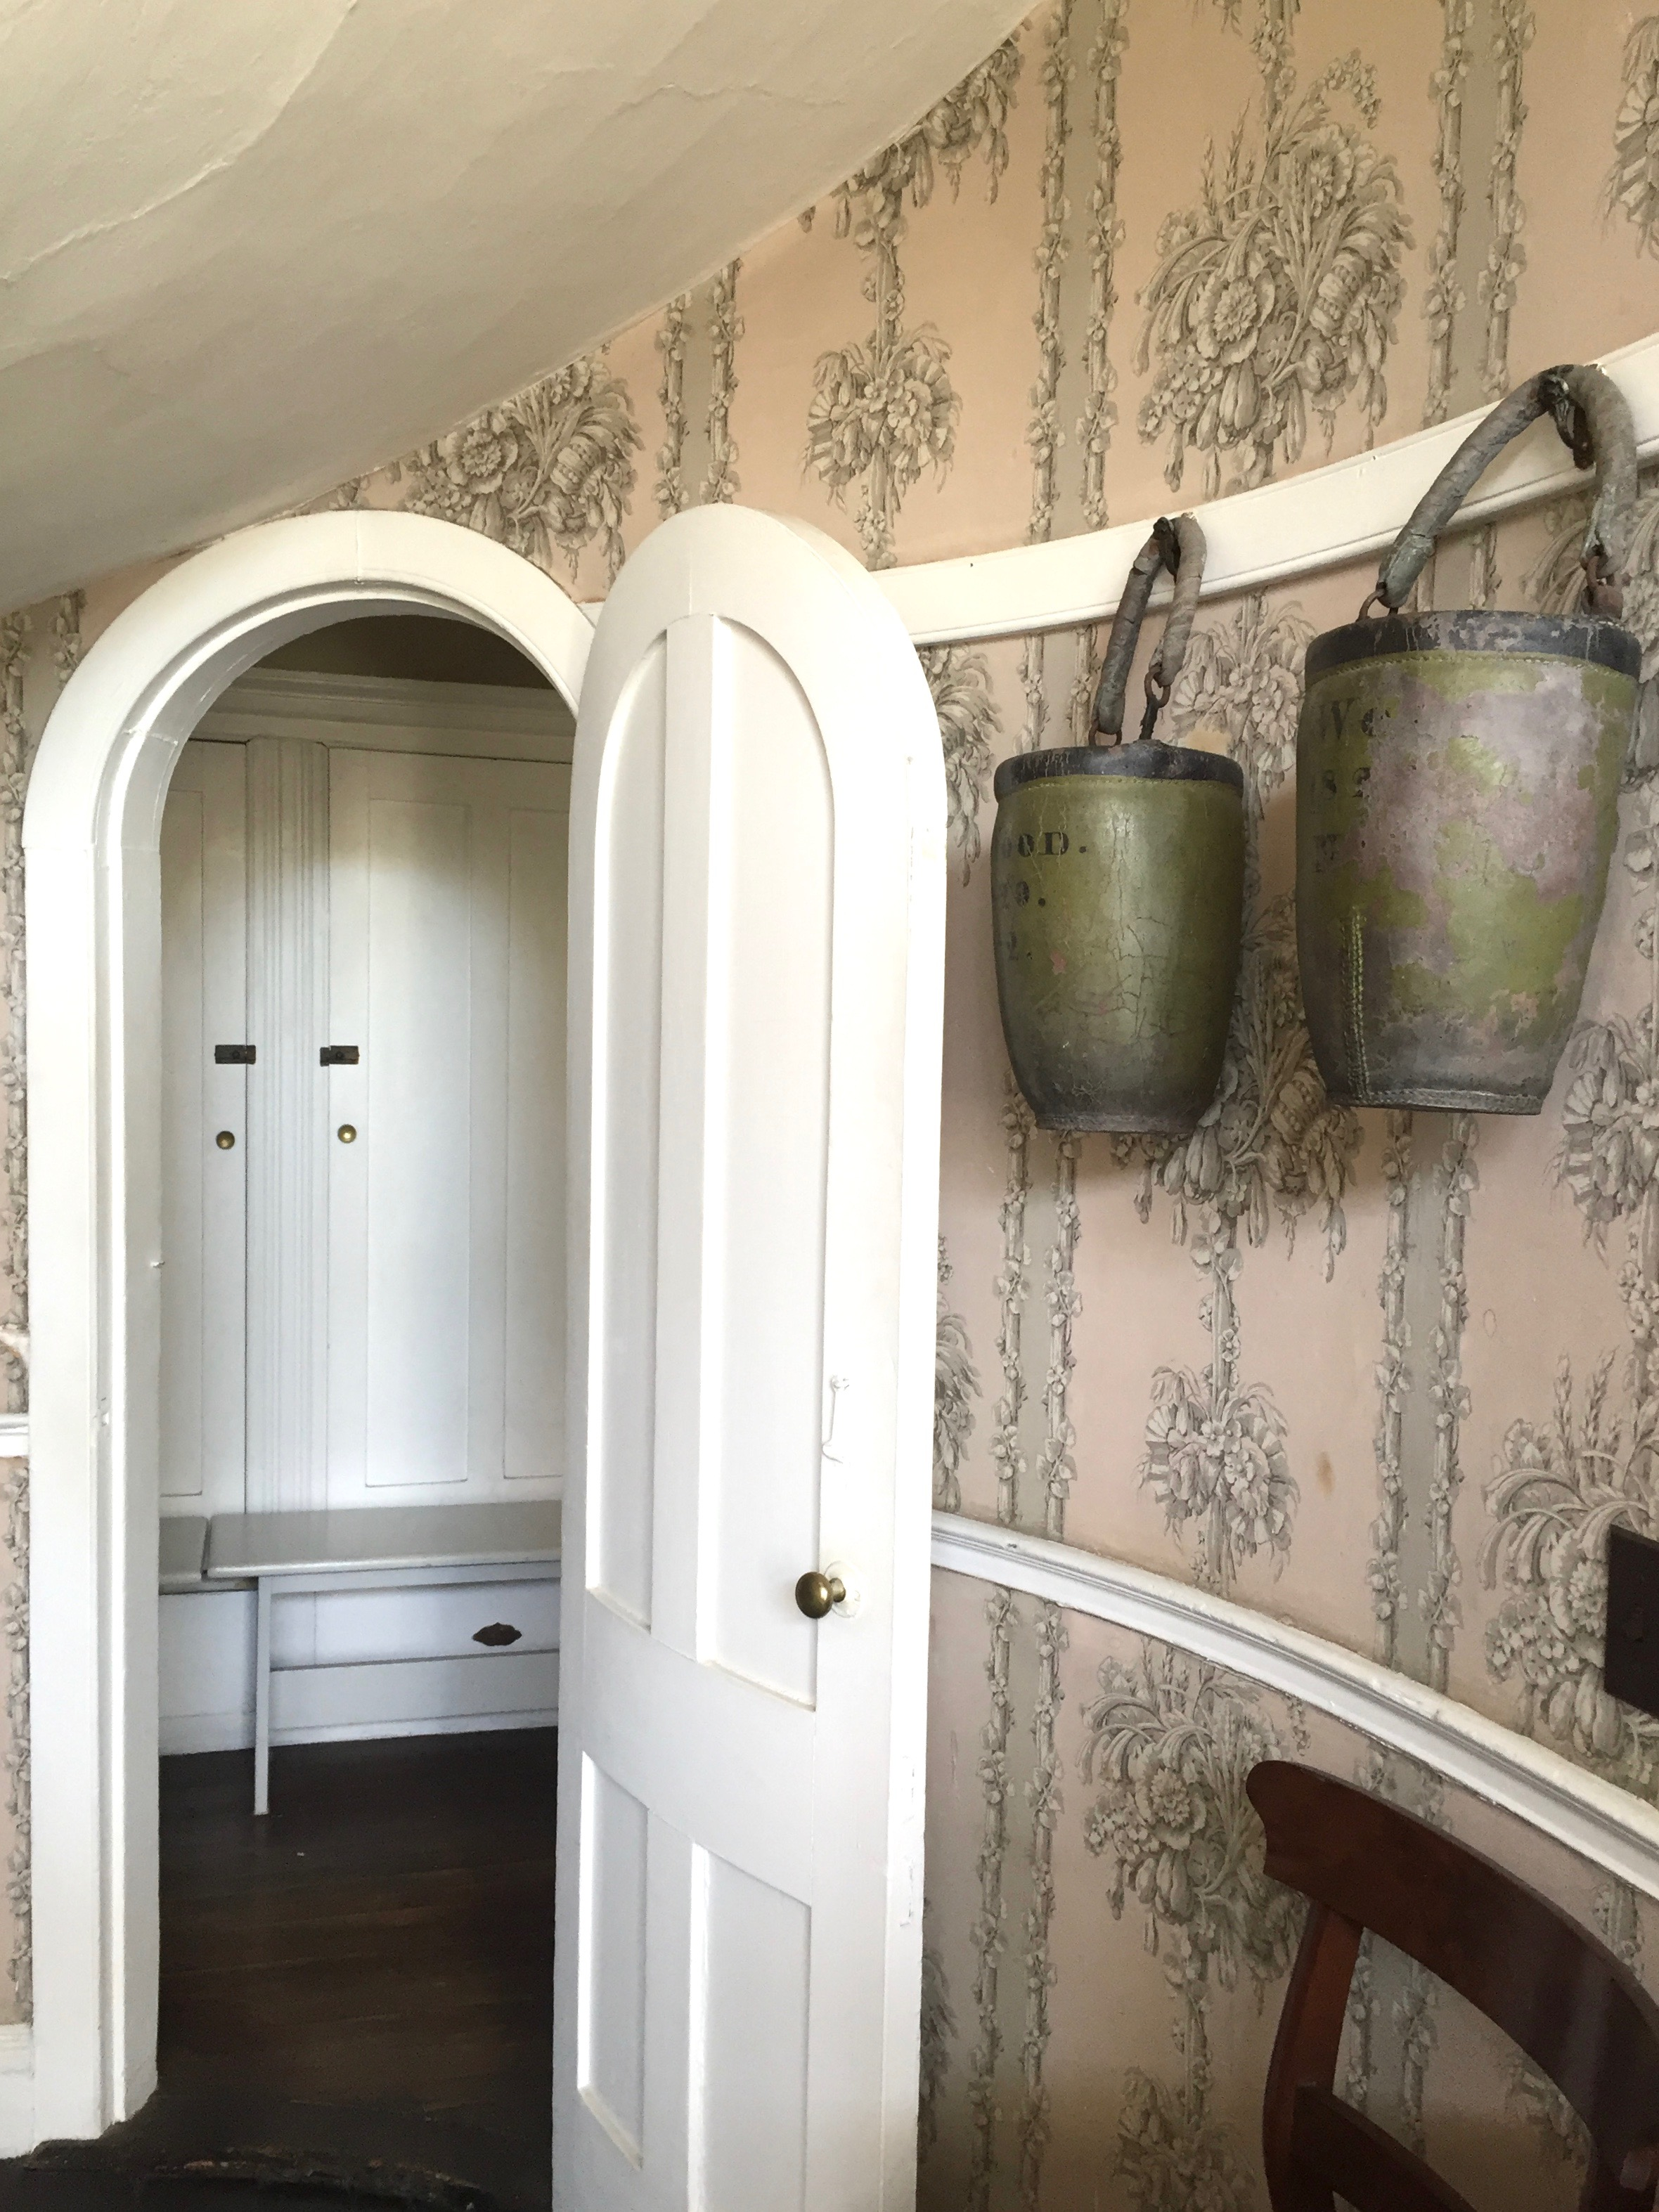 Wallpaper in the foyer of a historic home in Maine - Photo - Linda Smith Davis